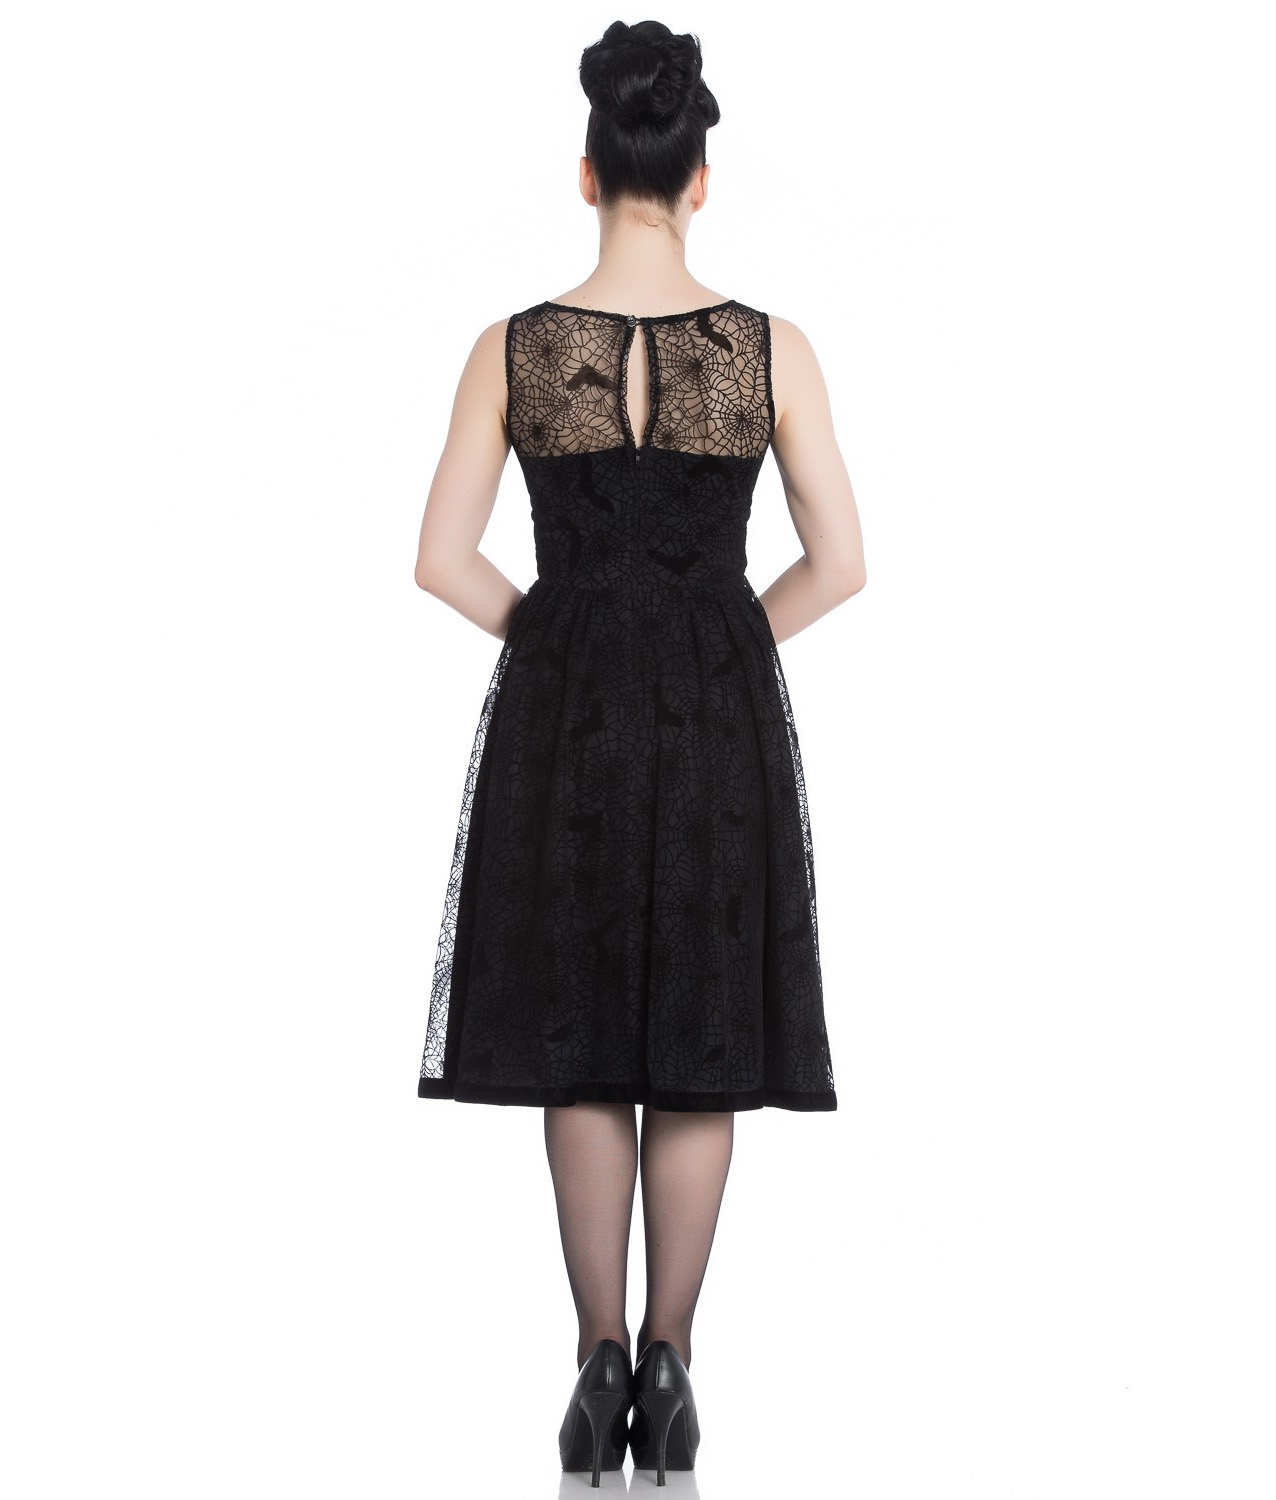 Hell-Bunny-50s-Black-Gothic-Net-Dress-Witchy-AMARANDE-Spiders-Bats-All-Sizes thumbnail 17